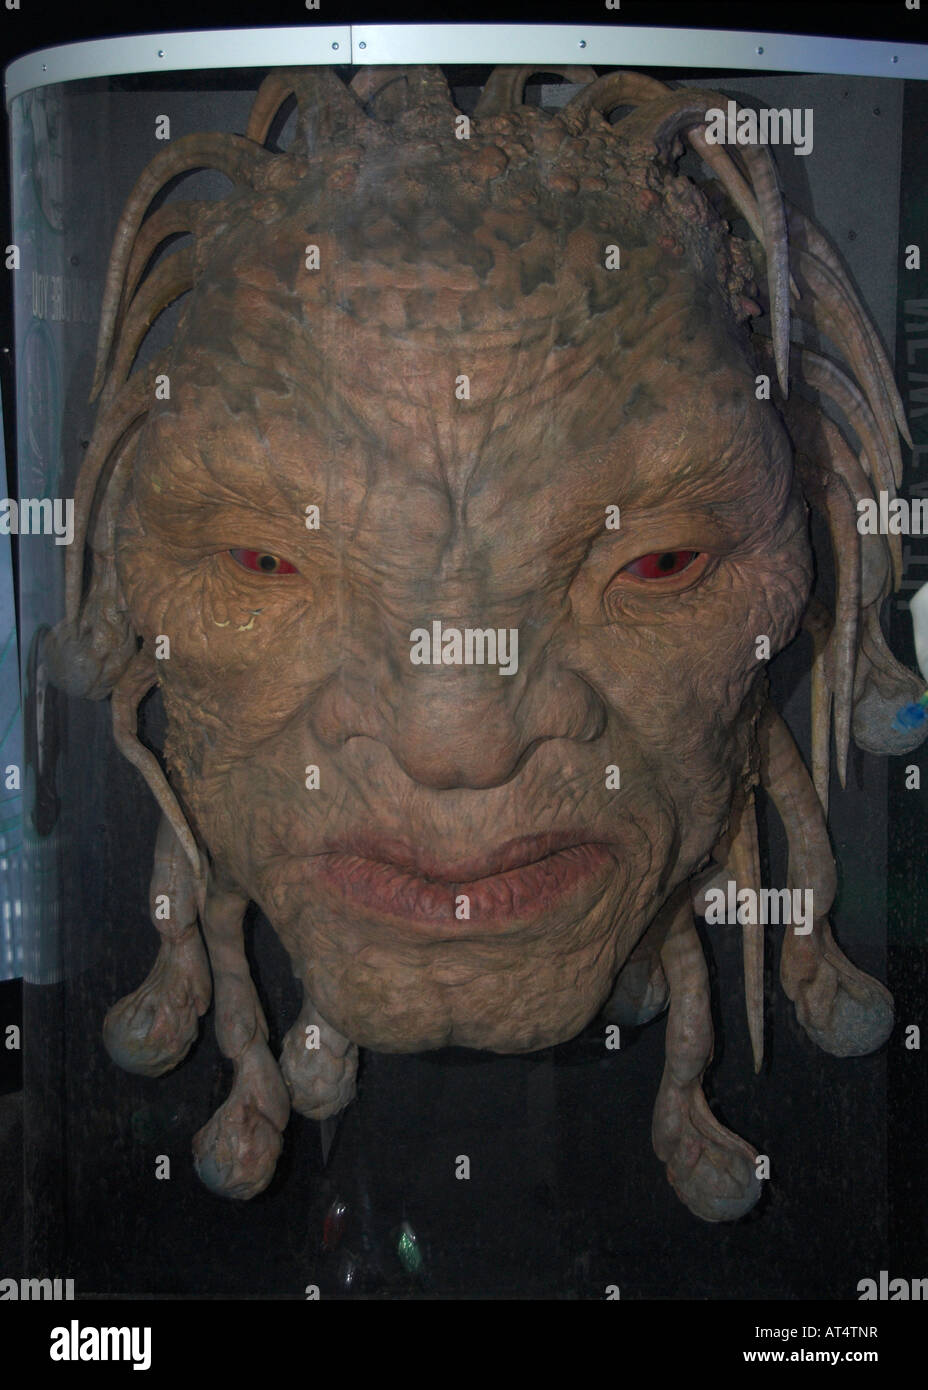 Face Of Bow at the Dr Who exhibition at Lands End Cornwall - Stock Image